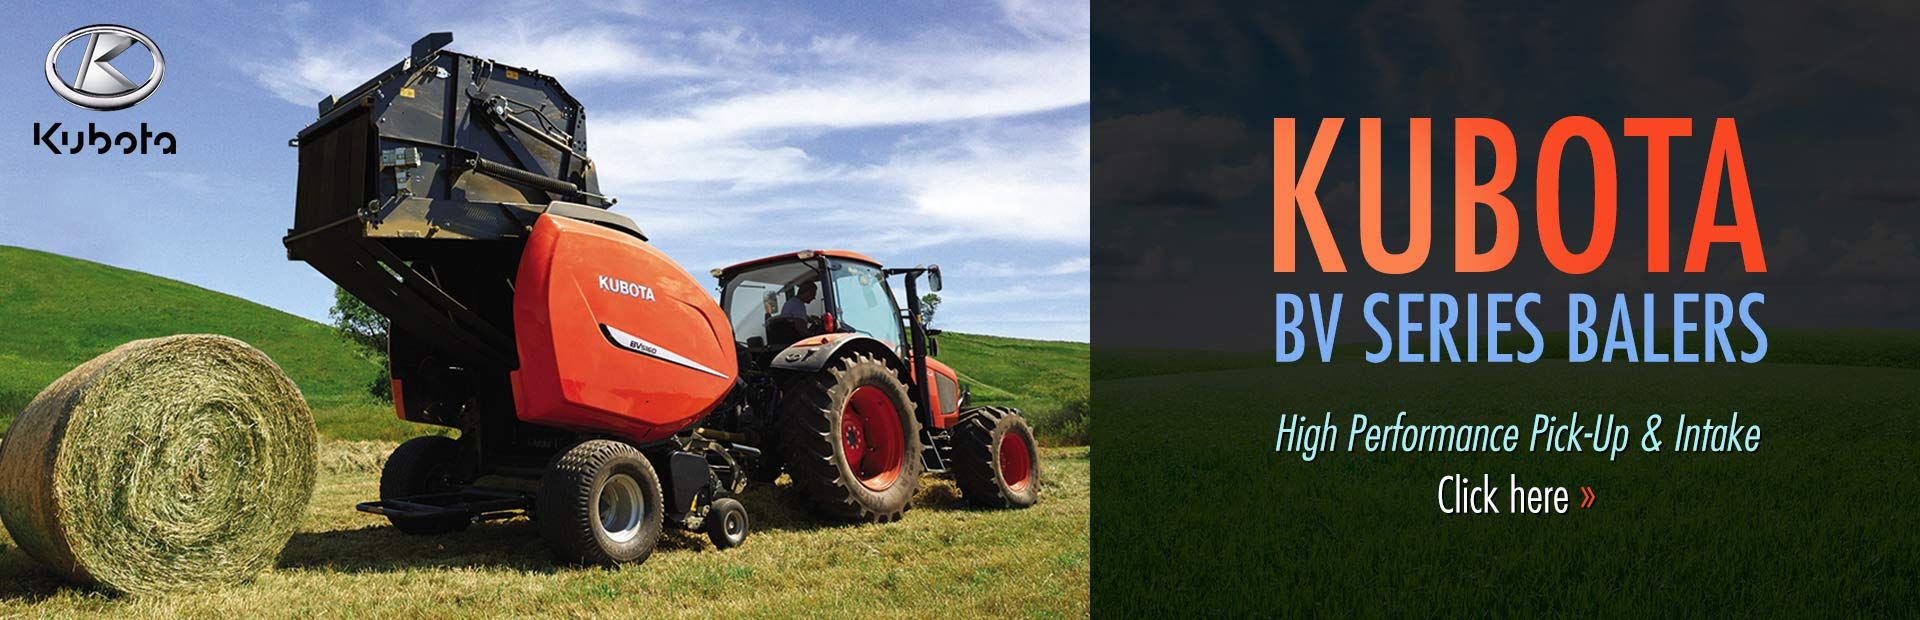 Click here to view our selection of Kubota BV series balers!